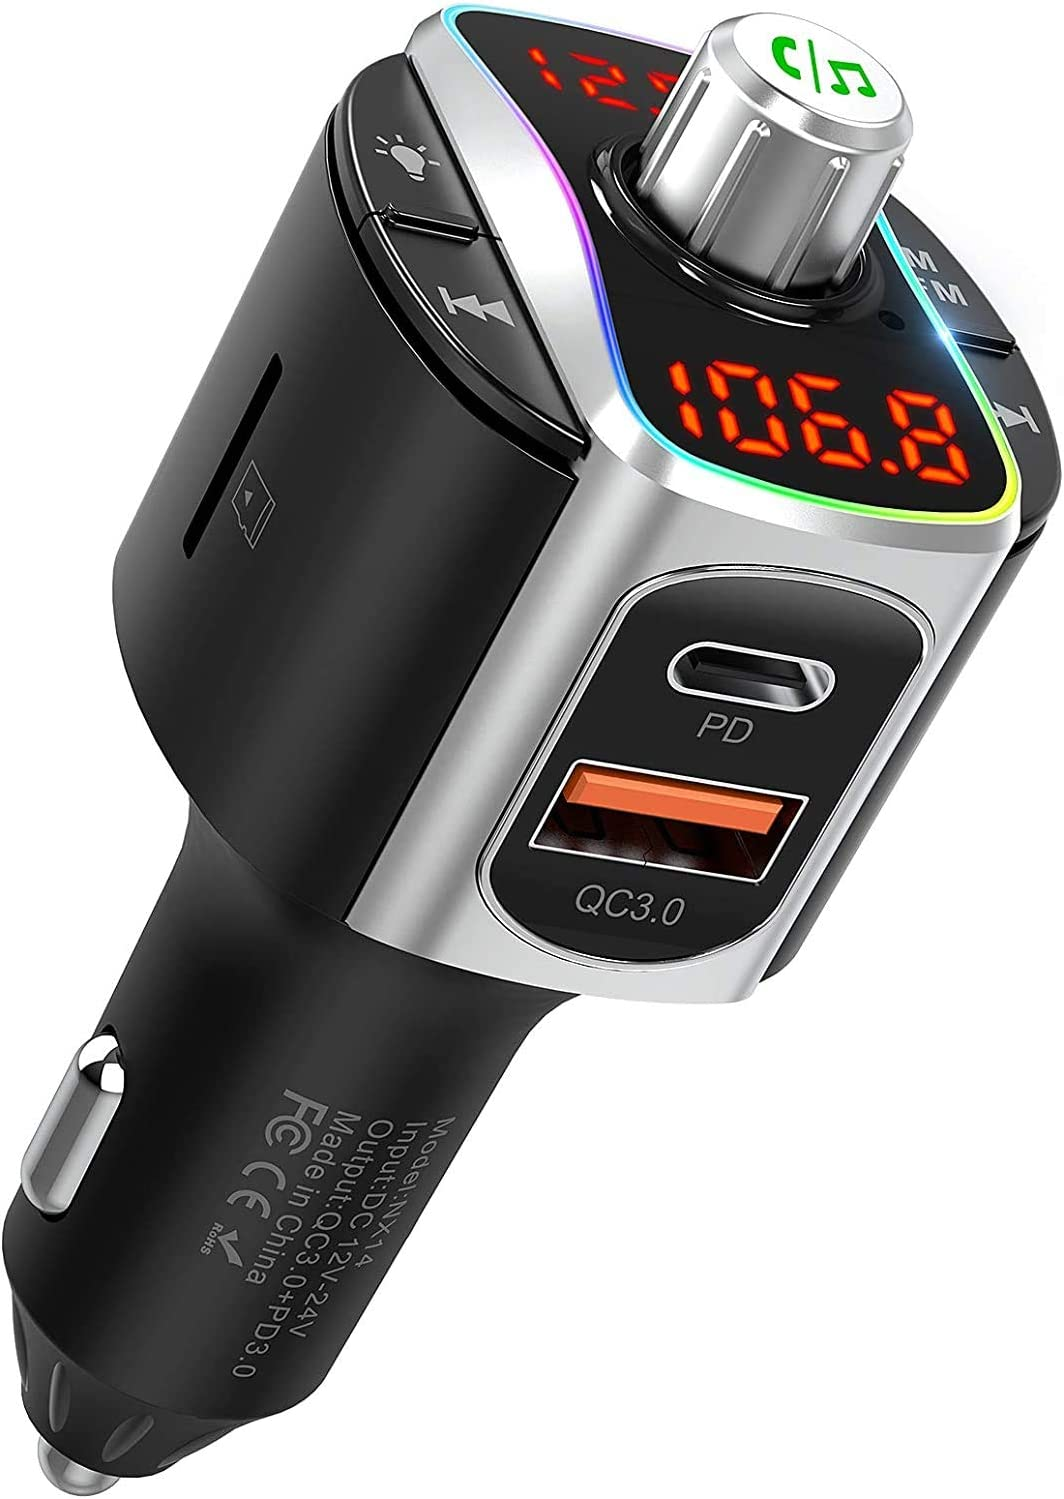 Nulaxy Bluetooth 5.0 Car Adapter, FM Transmitter for Car : Dual Screen Display QC3.0 & PD 18W Radio Adapter Music Player/Car Kit with Hands-Free Calls, Siri Google Assistant – NX14